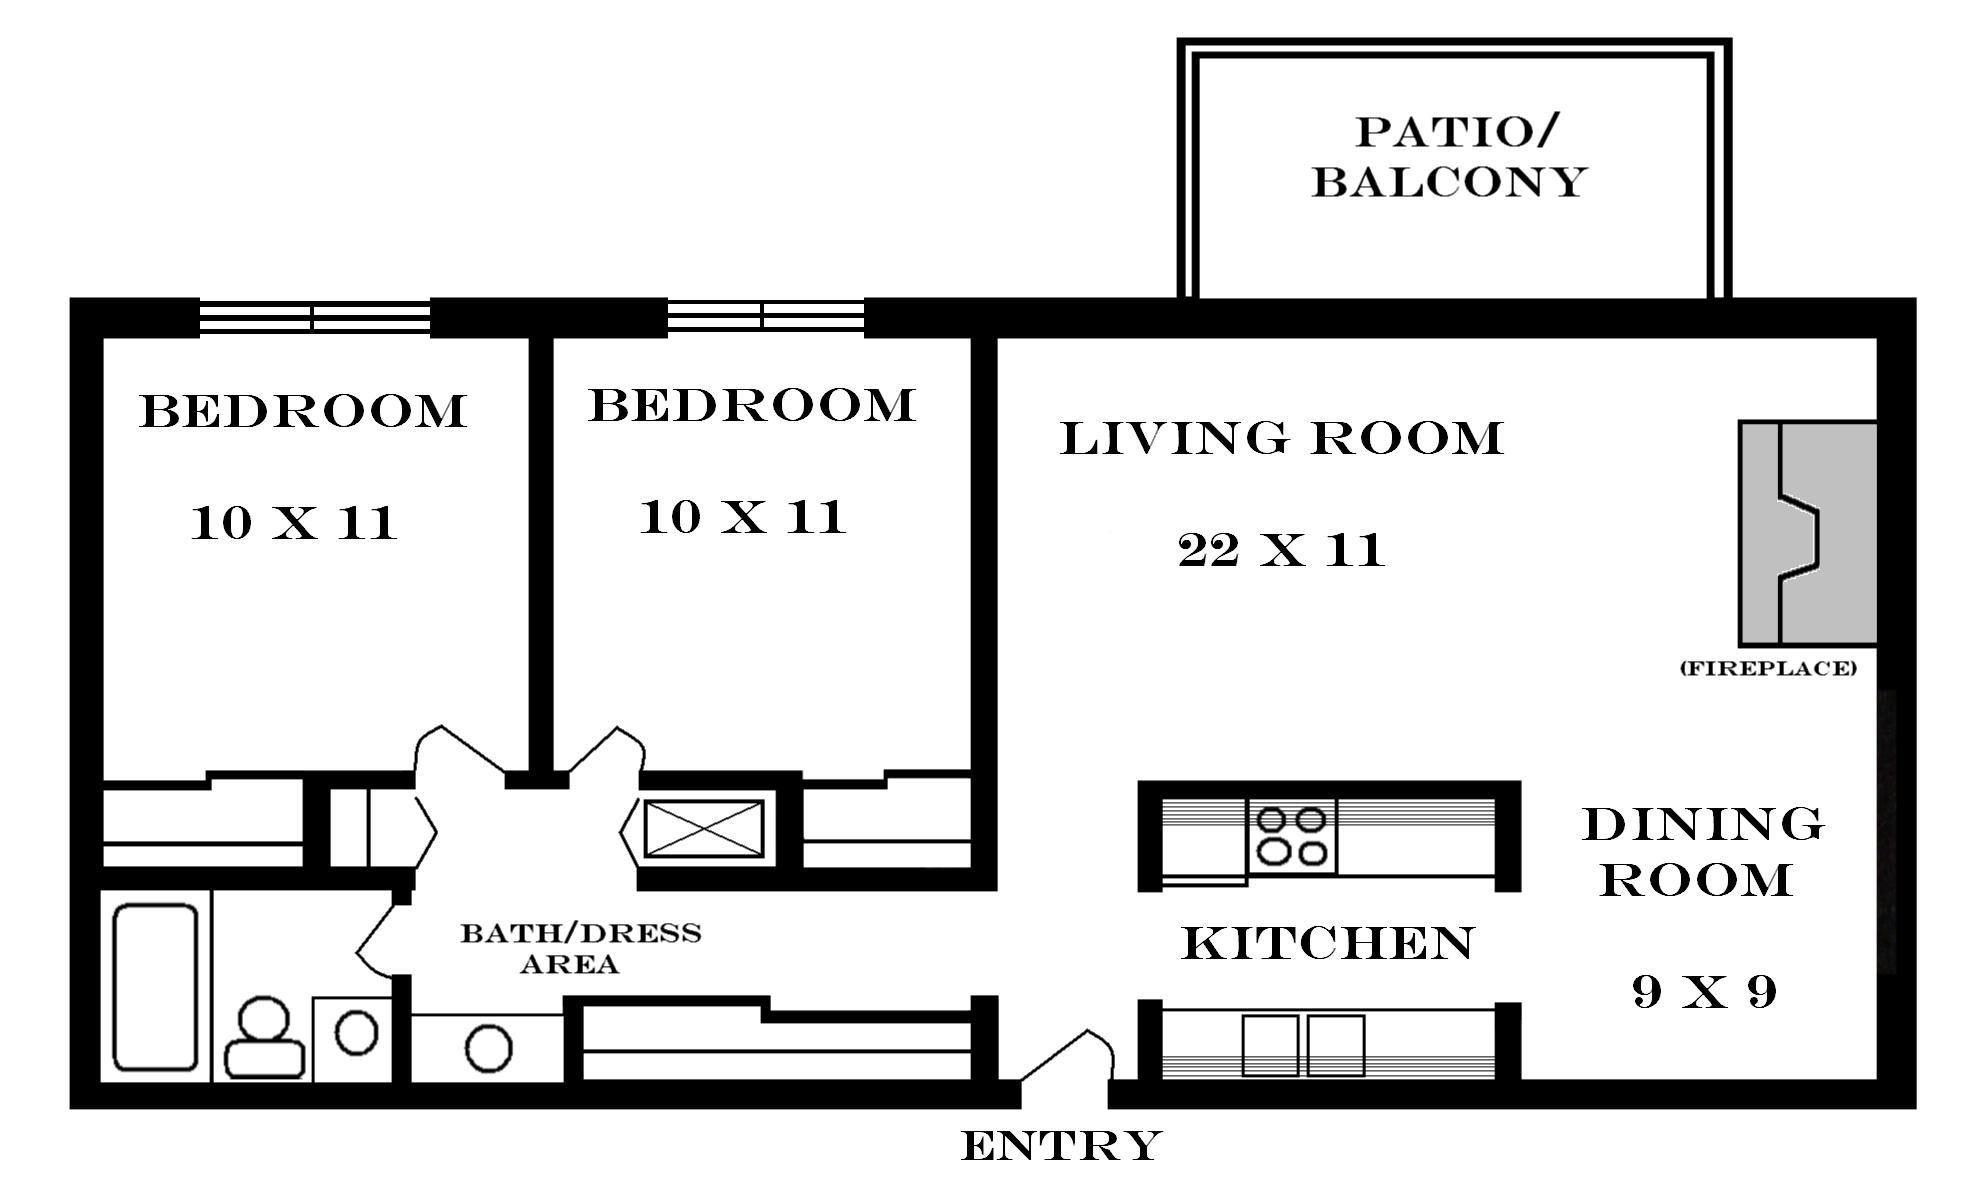 Small house floor plans 2 bedrooms 900 tiny houses for Two bedroom garage apartment plans